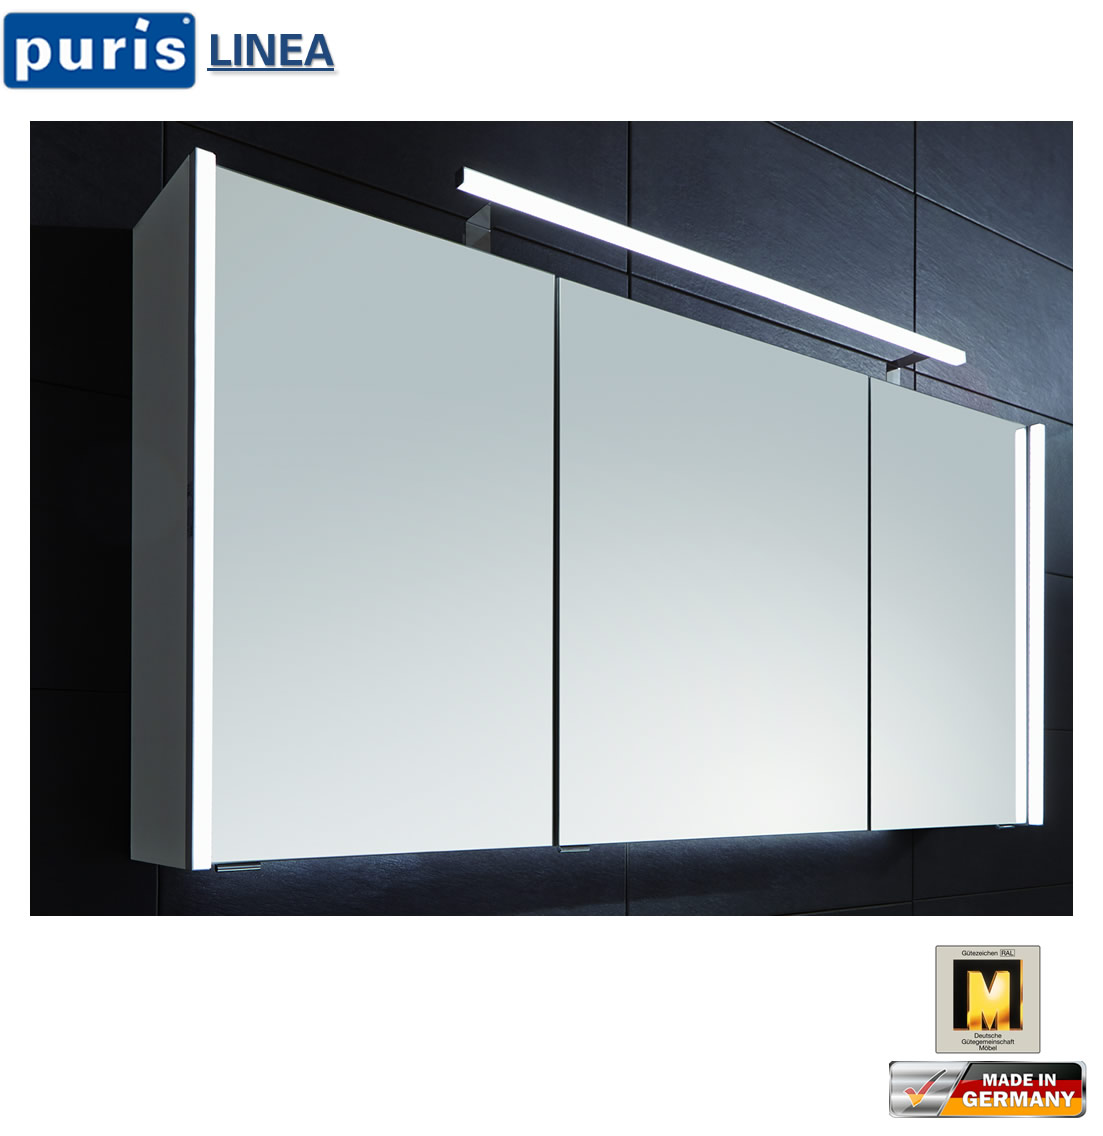 puris linea led spiegelschrank 100 cm s2a431079 impuls home. Black Bedroom Furniture Sets. Home Design Ideas